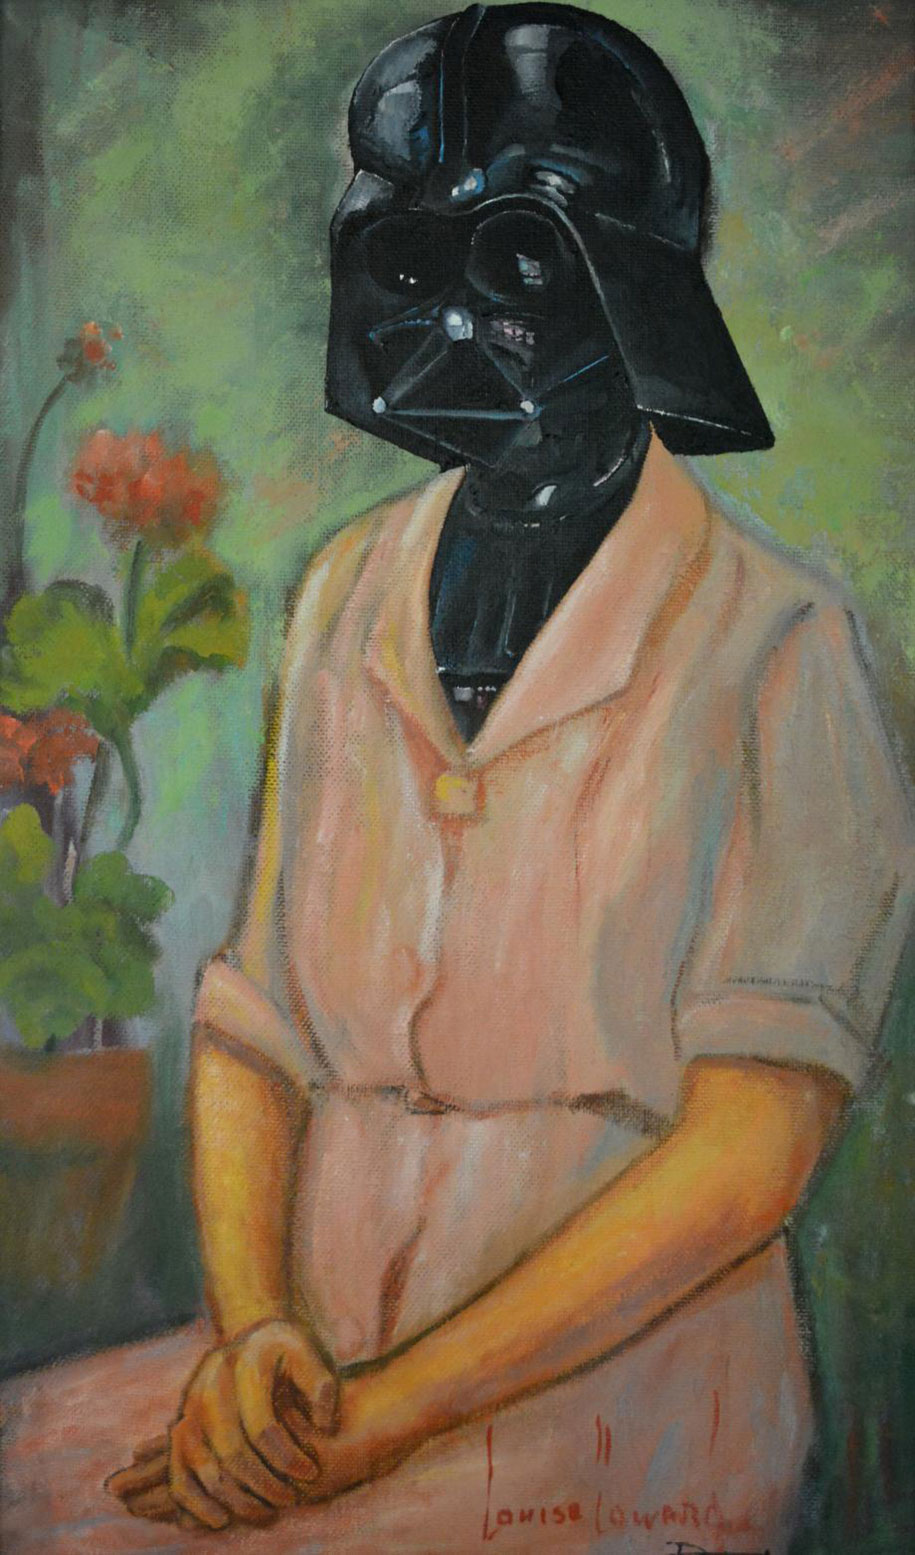 pop-culture-characters-additions-thrift-store-paintings-dave-pollot-25